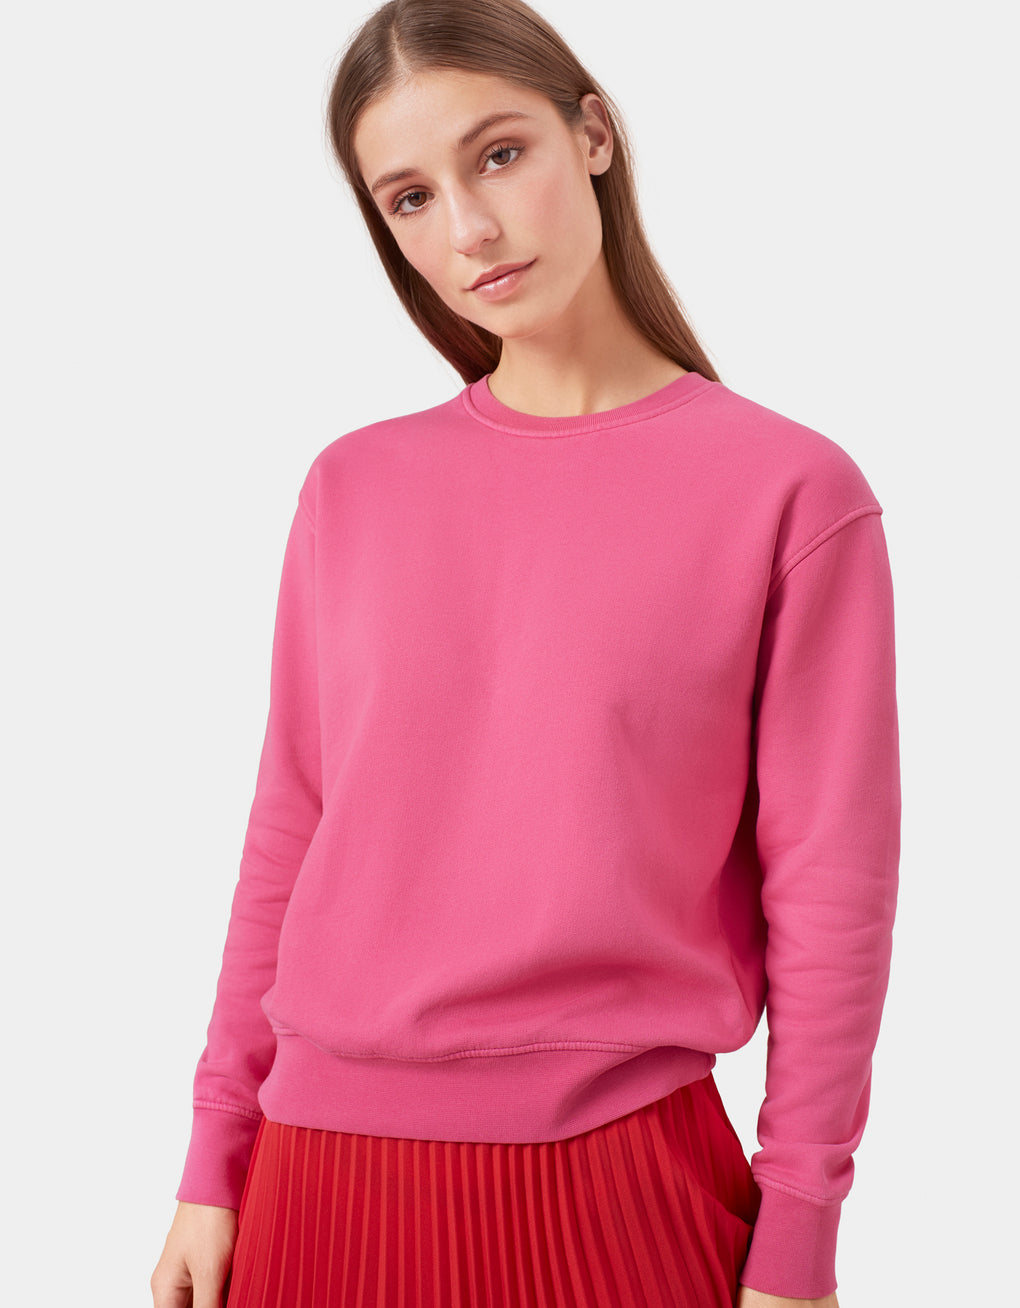 Colorful Standard Women Classic Organic Crew Women Crewneck Lemon Yellow